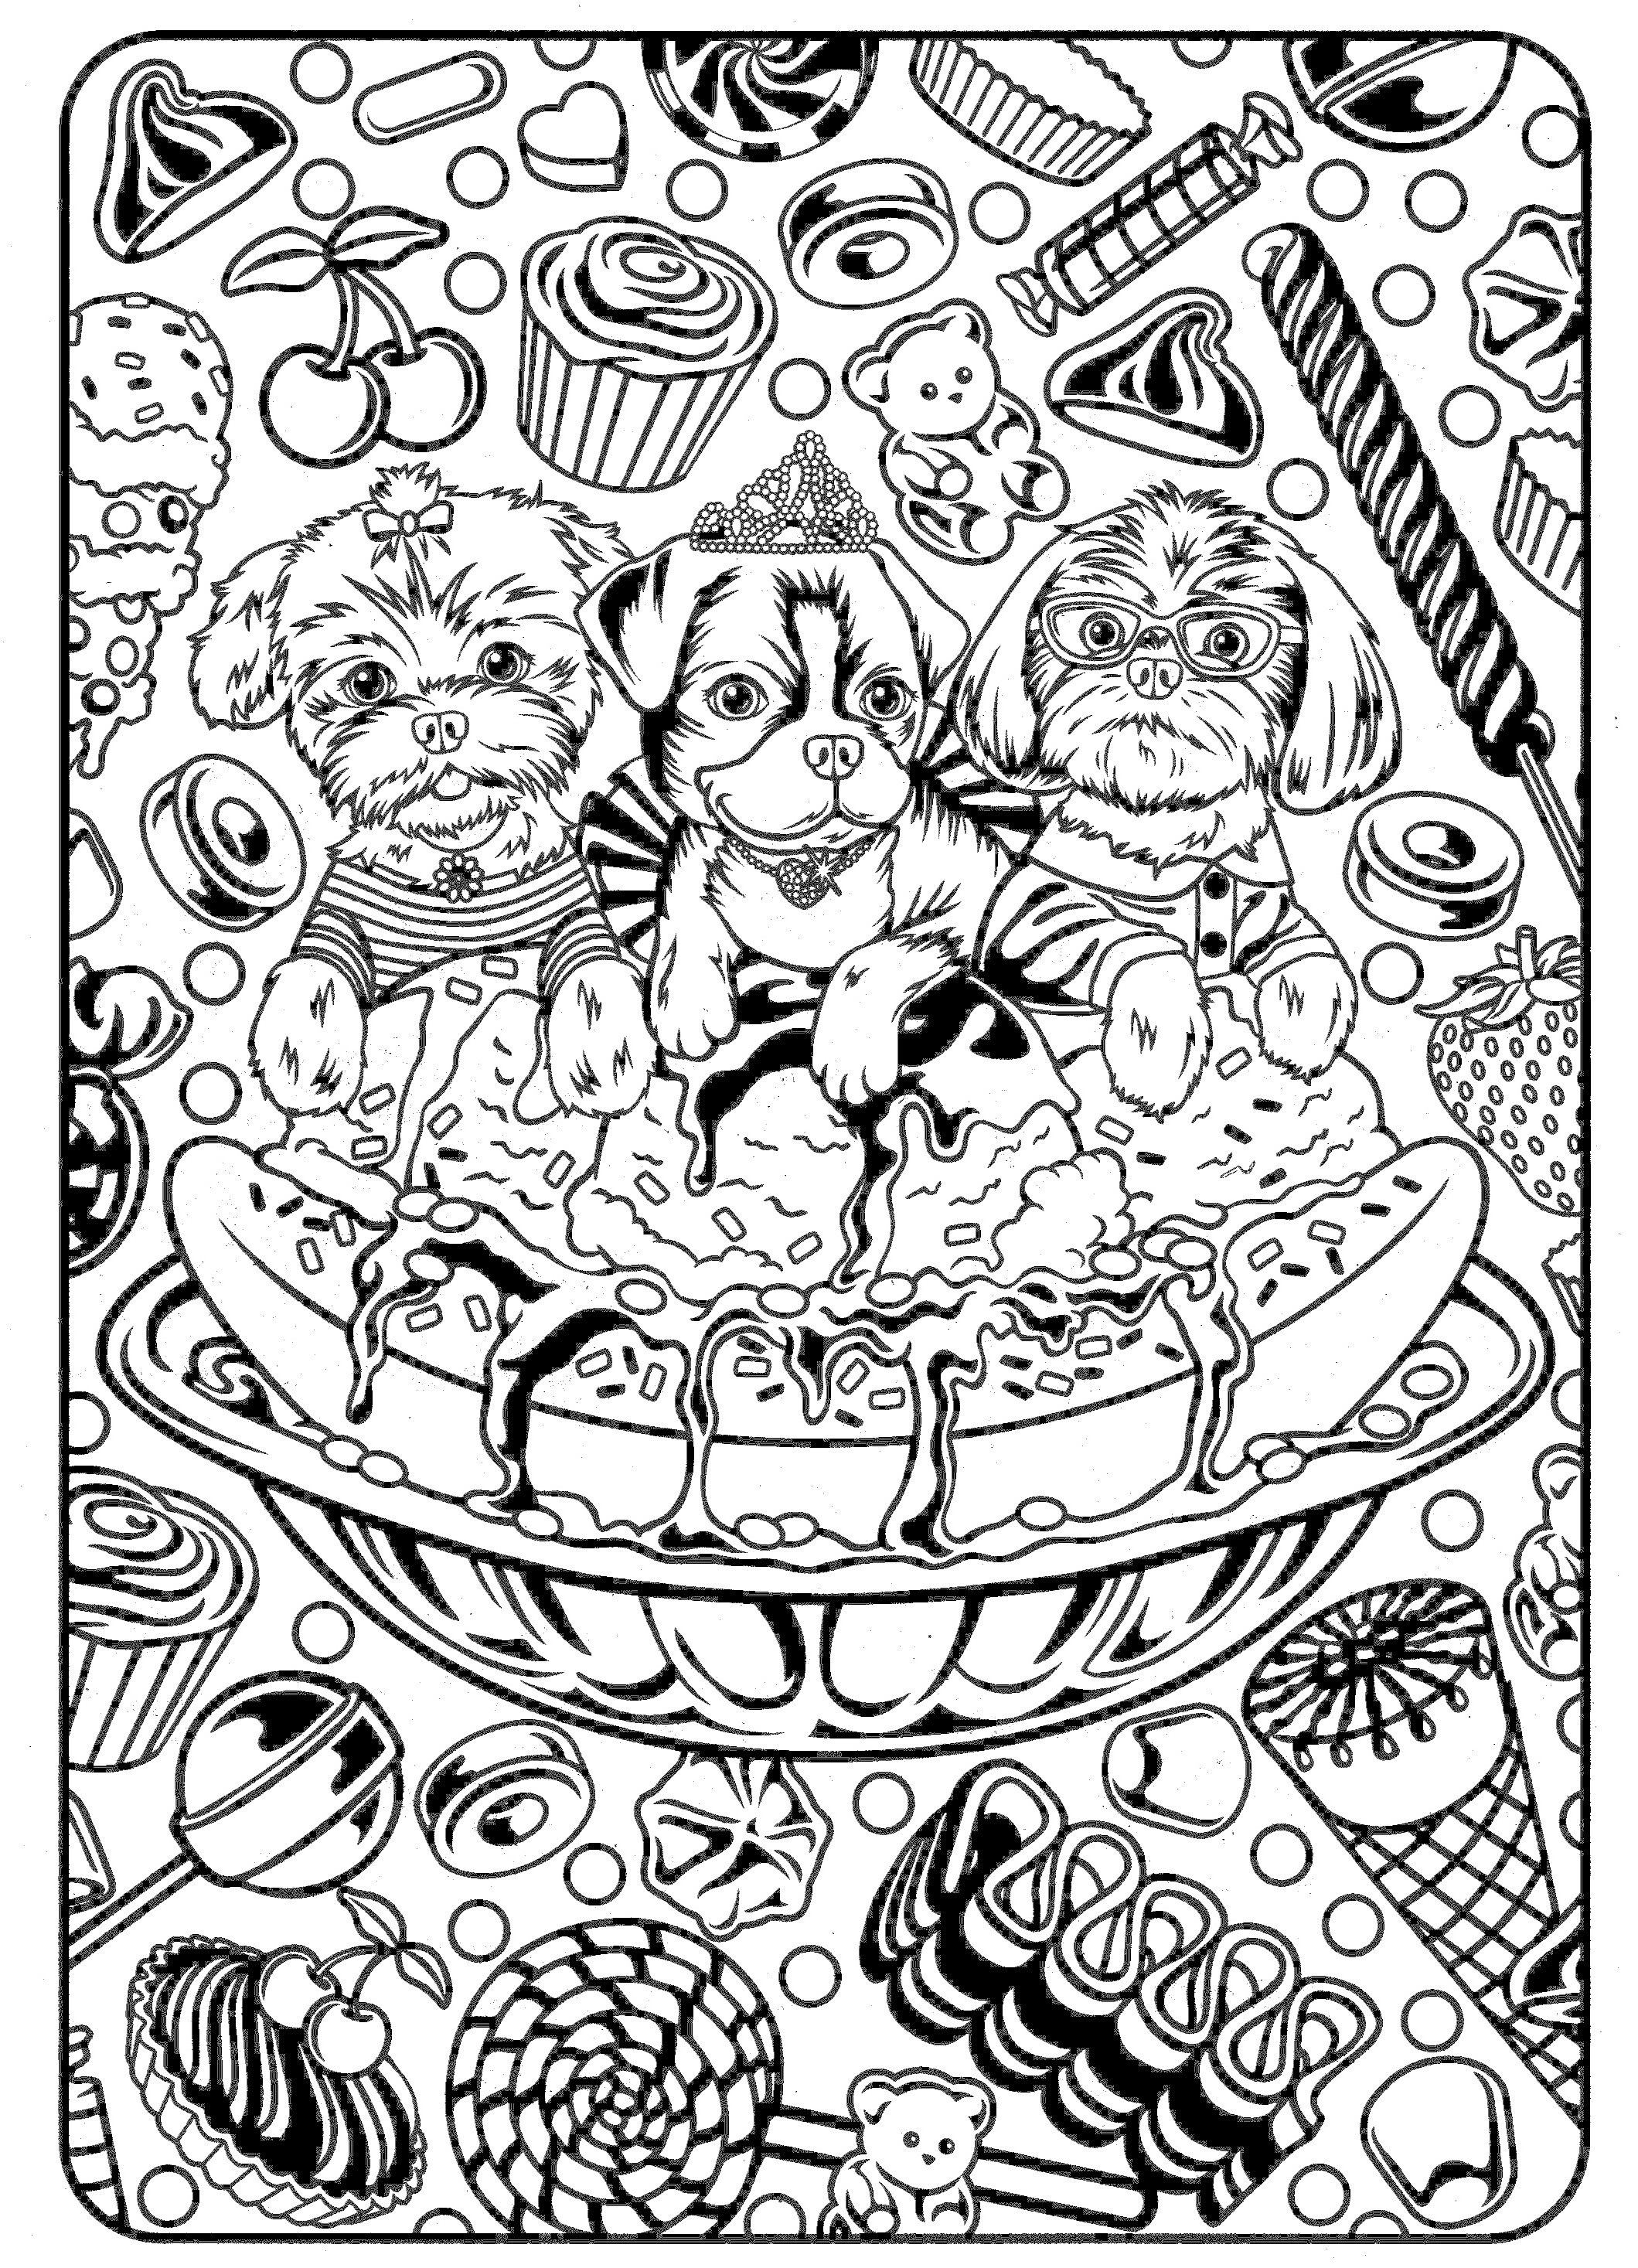 Coloring Pages Minion  to Print 20i - Free For Children